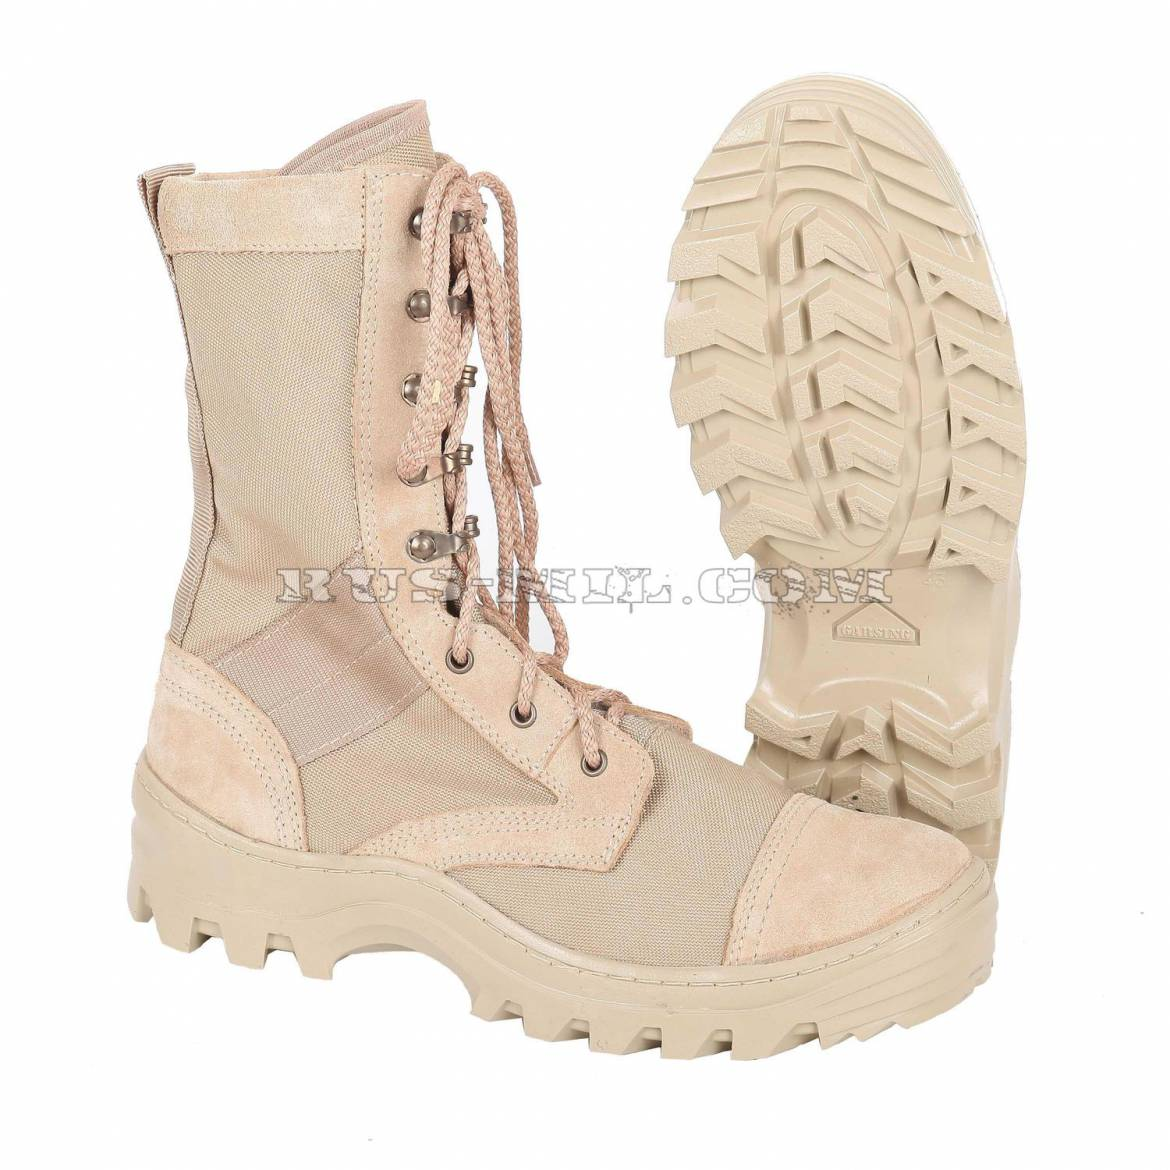 Russian-army-Boots-Garsing-Sahara-m.-355-P-m.-35-P-sand-at-low-price.jpg